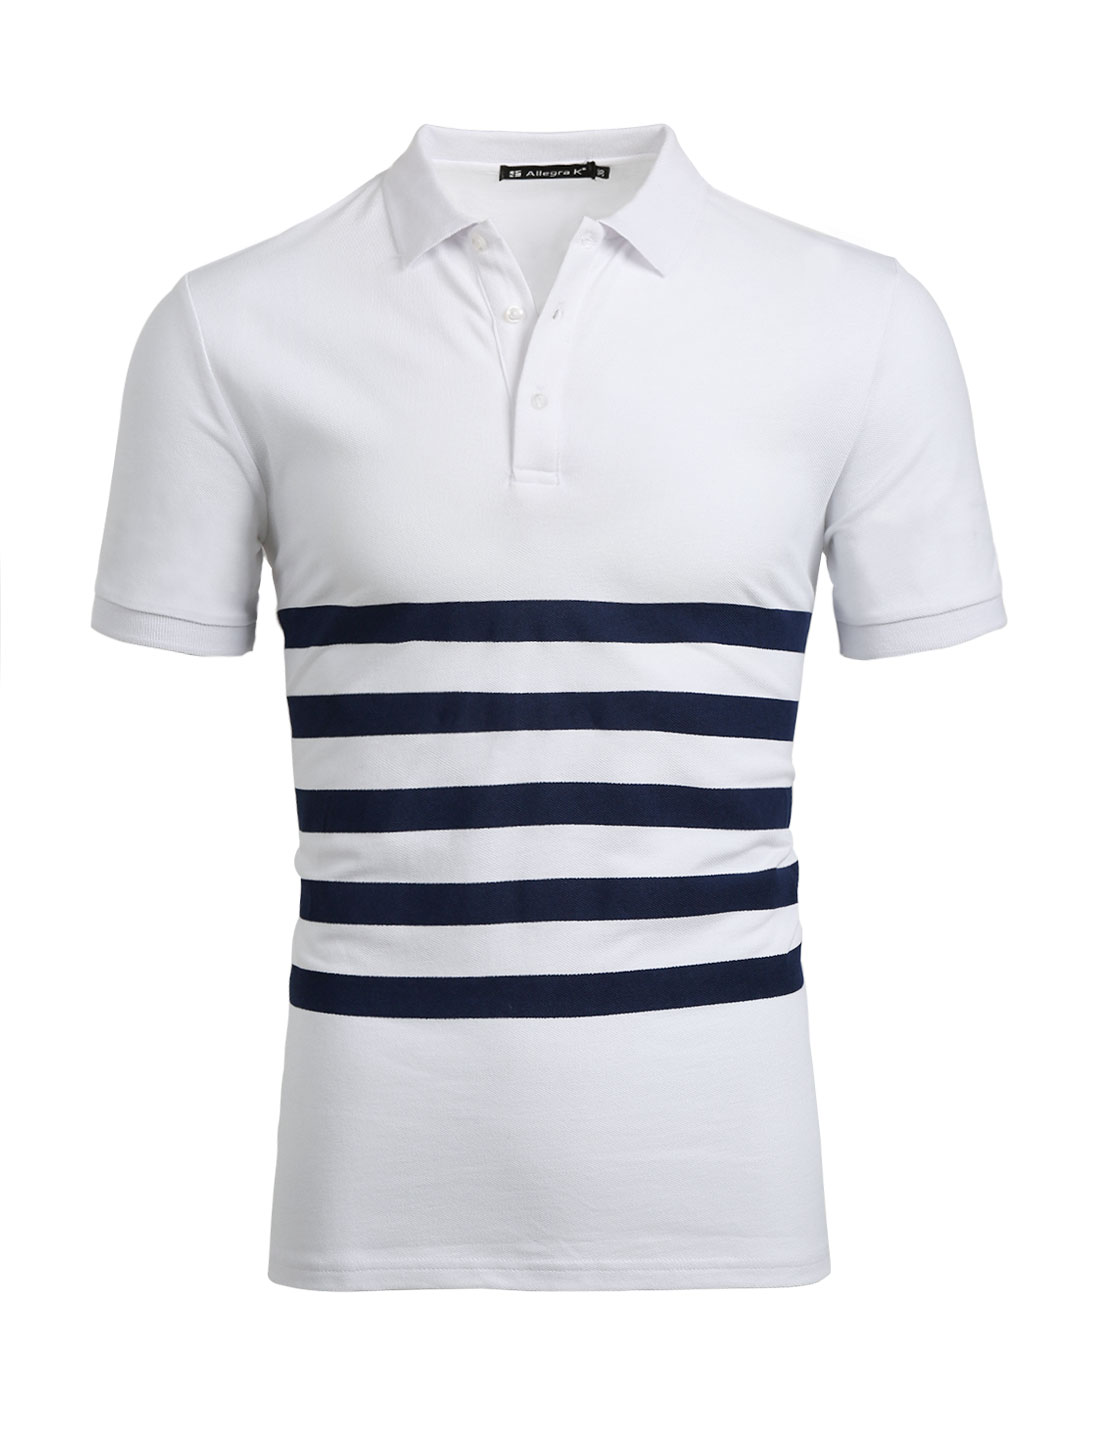 Men Half Placket Buttoned Short Sleeves Striped T-Shirt White S